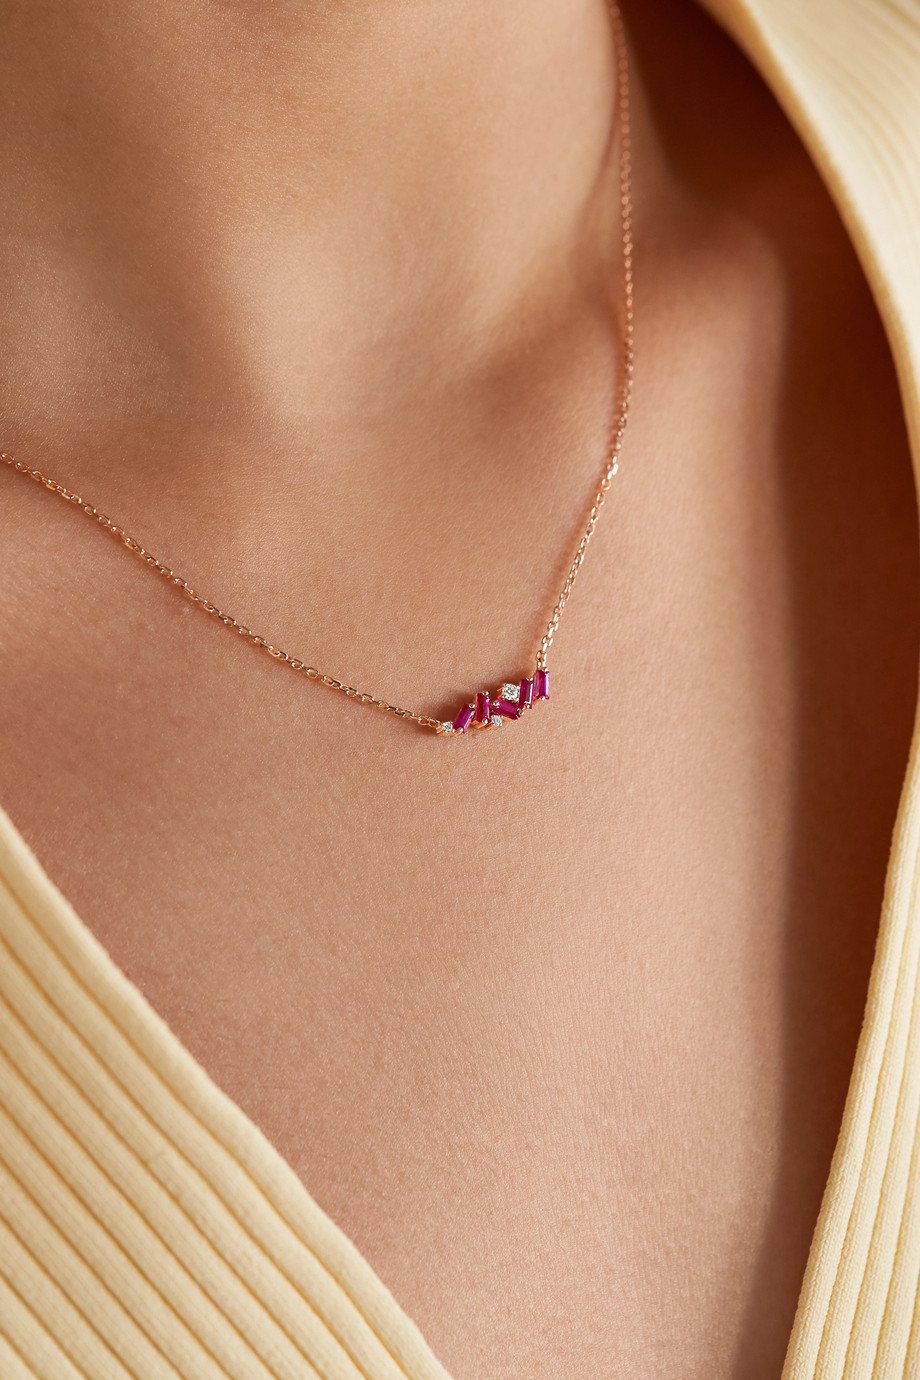 SUZANNE KALAN 18-karat rose gold, ruby and diamond necklace